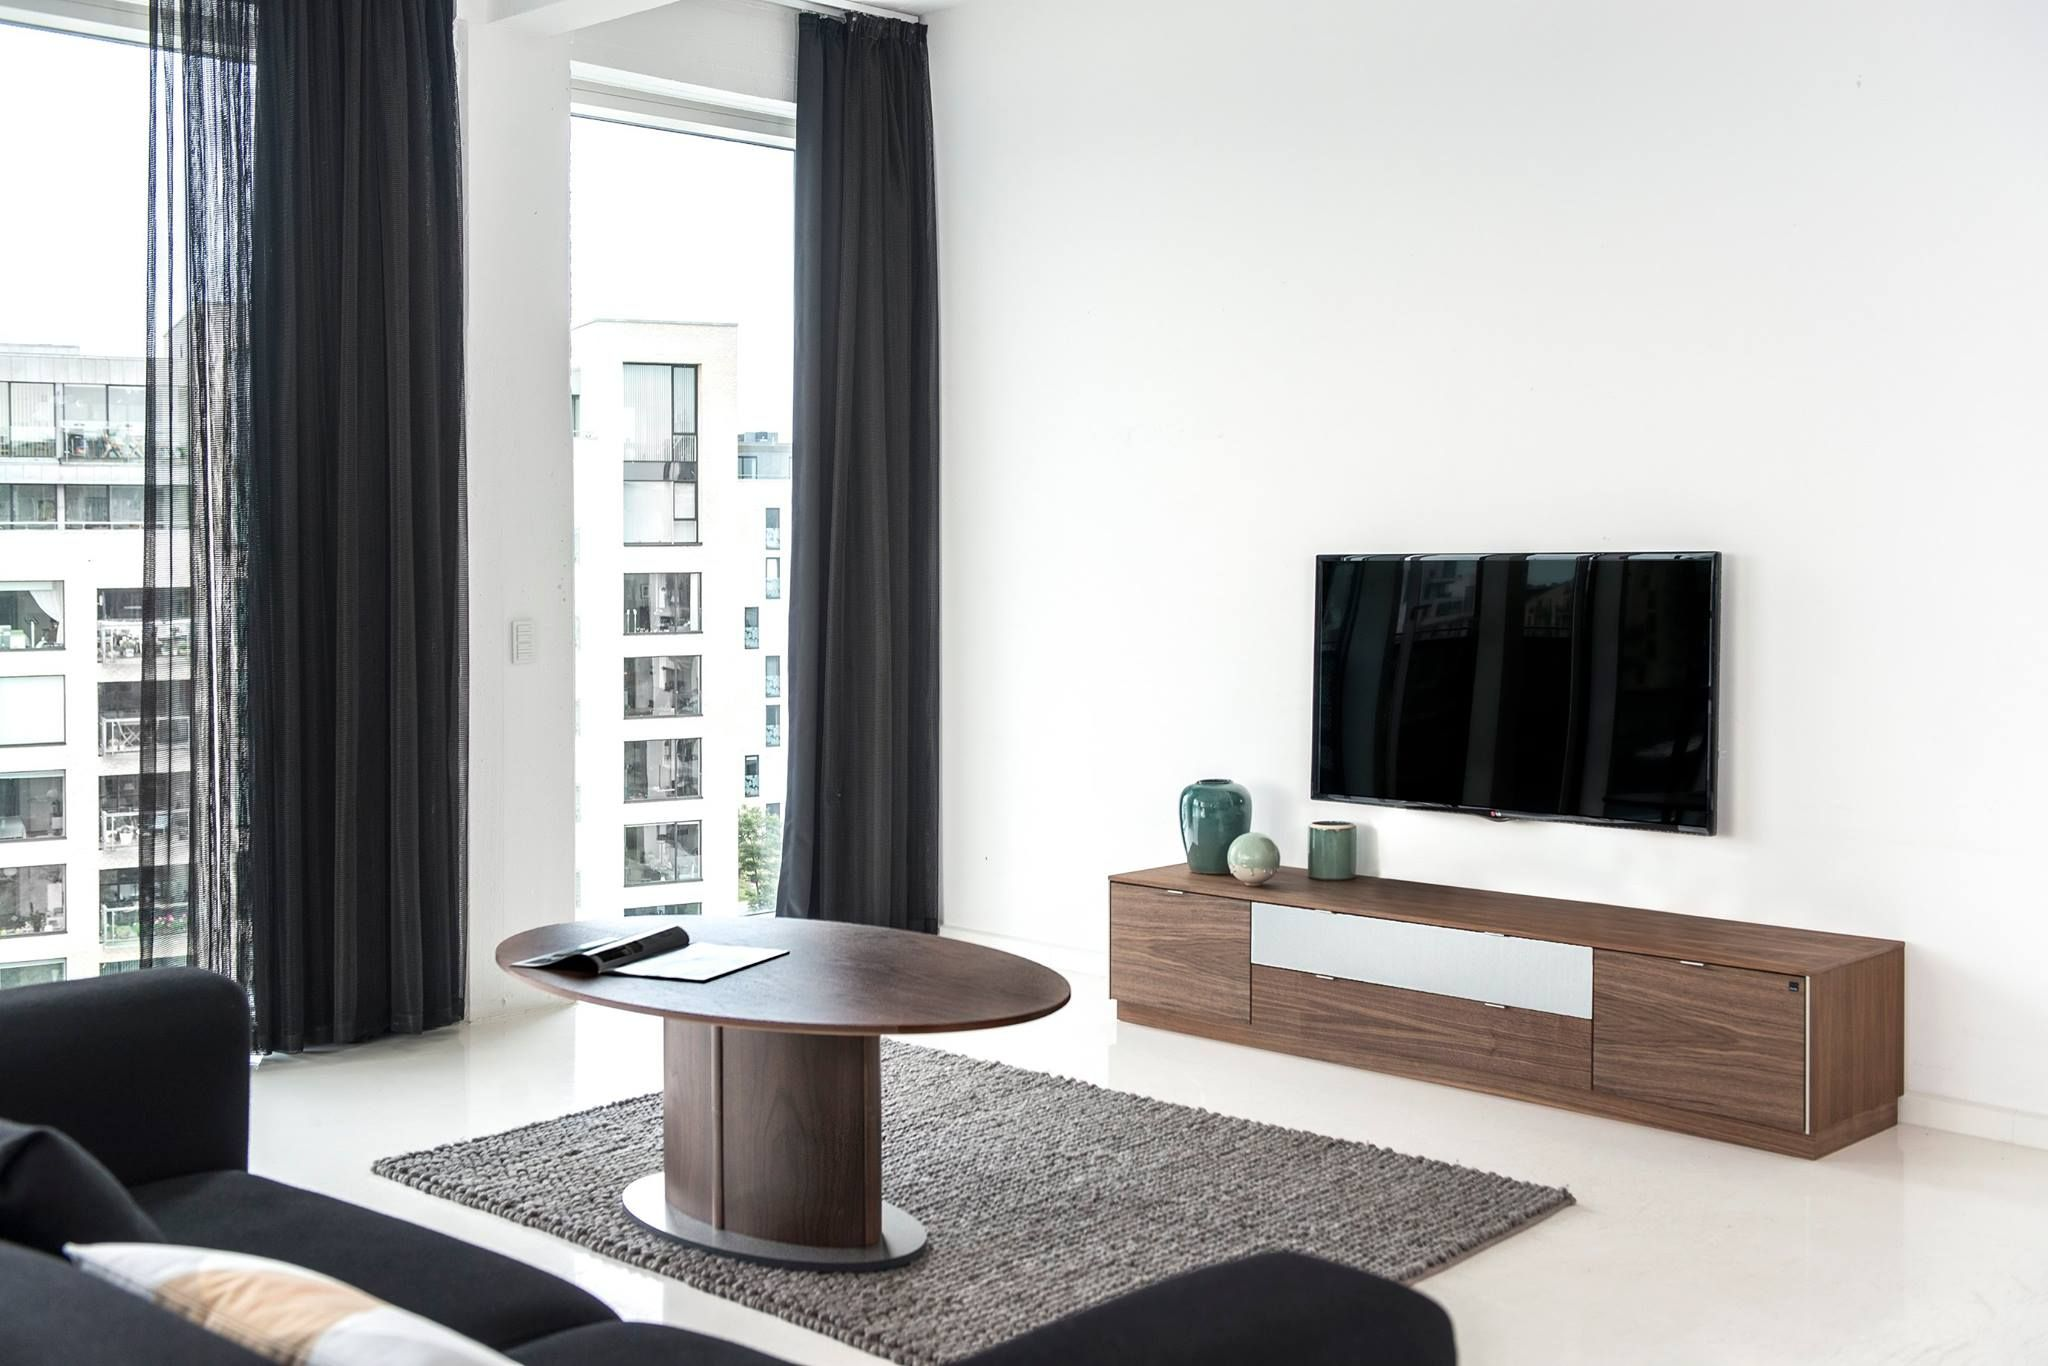 Find Beautifully Stylish Furniture That Fits Your Sarasota Lifestyle At  Www.Copenhagen Imports.